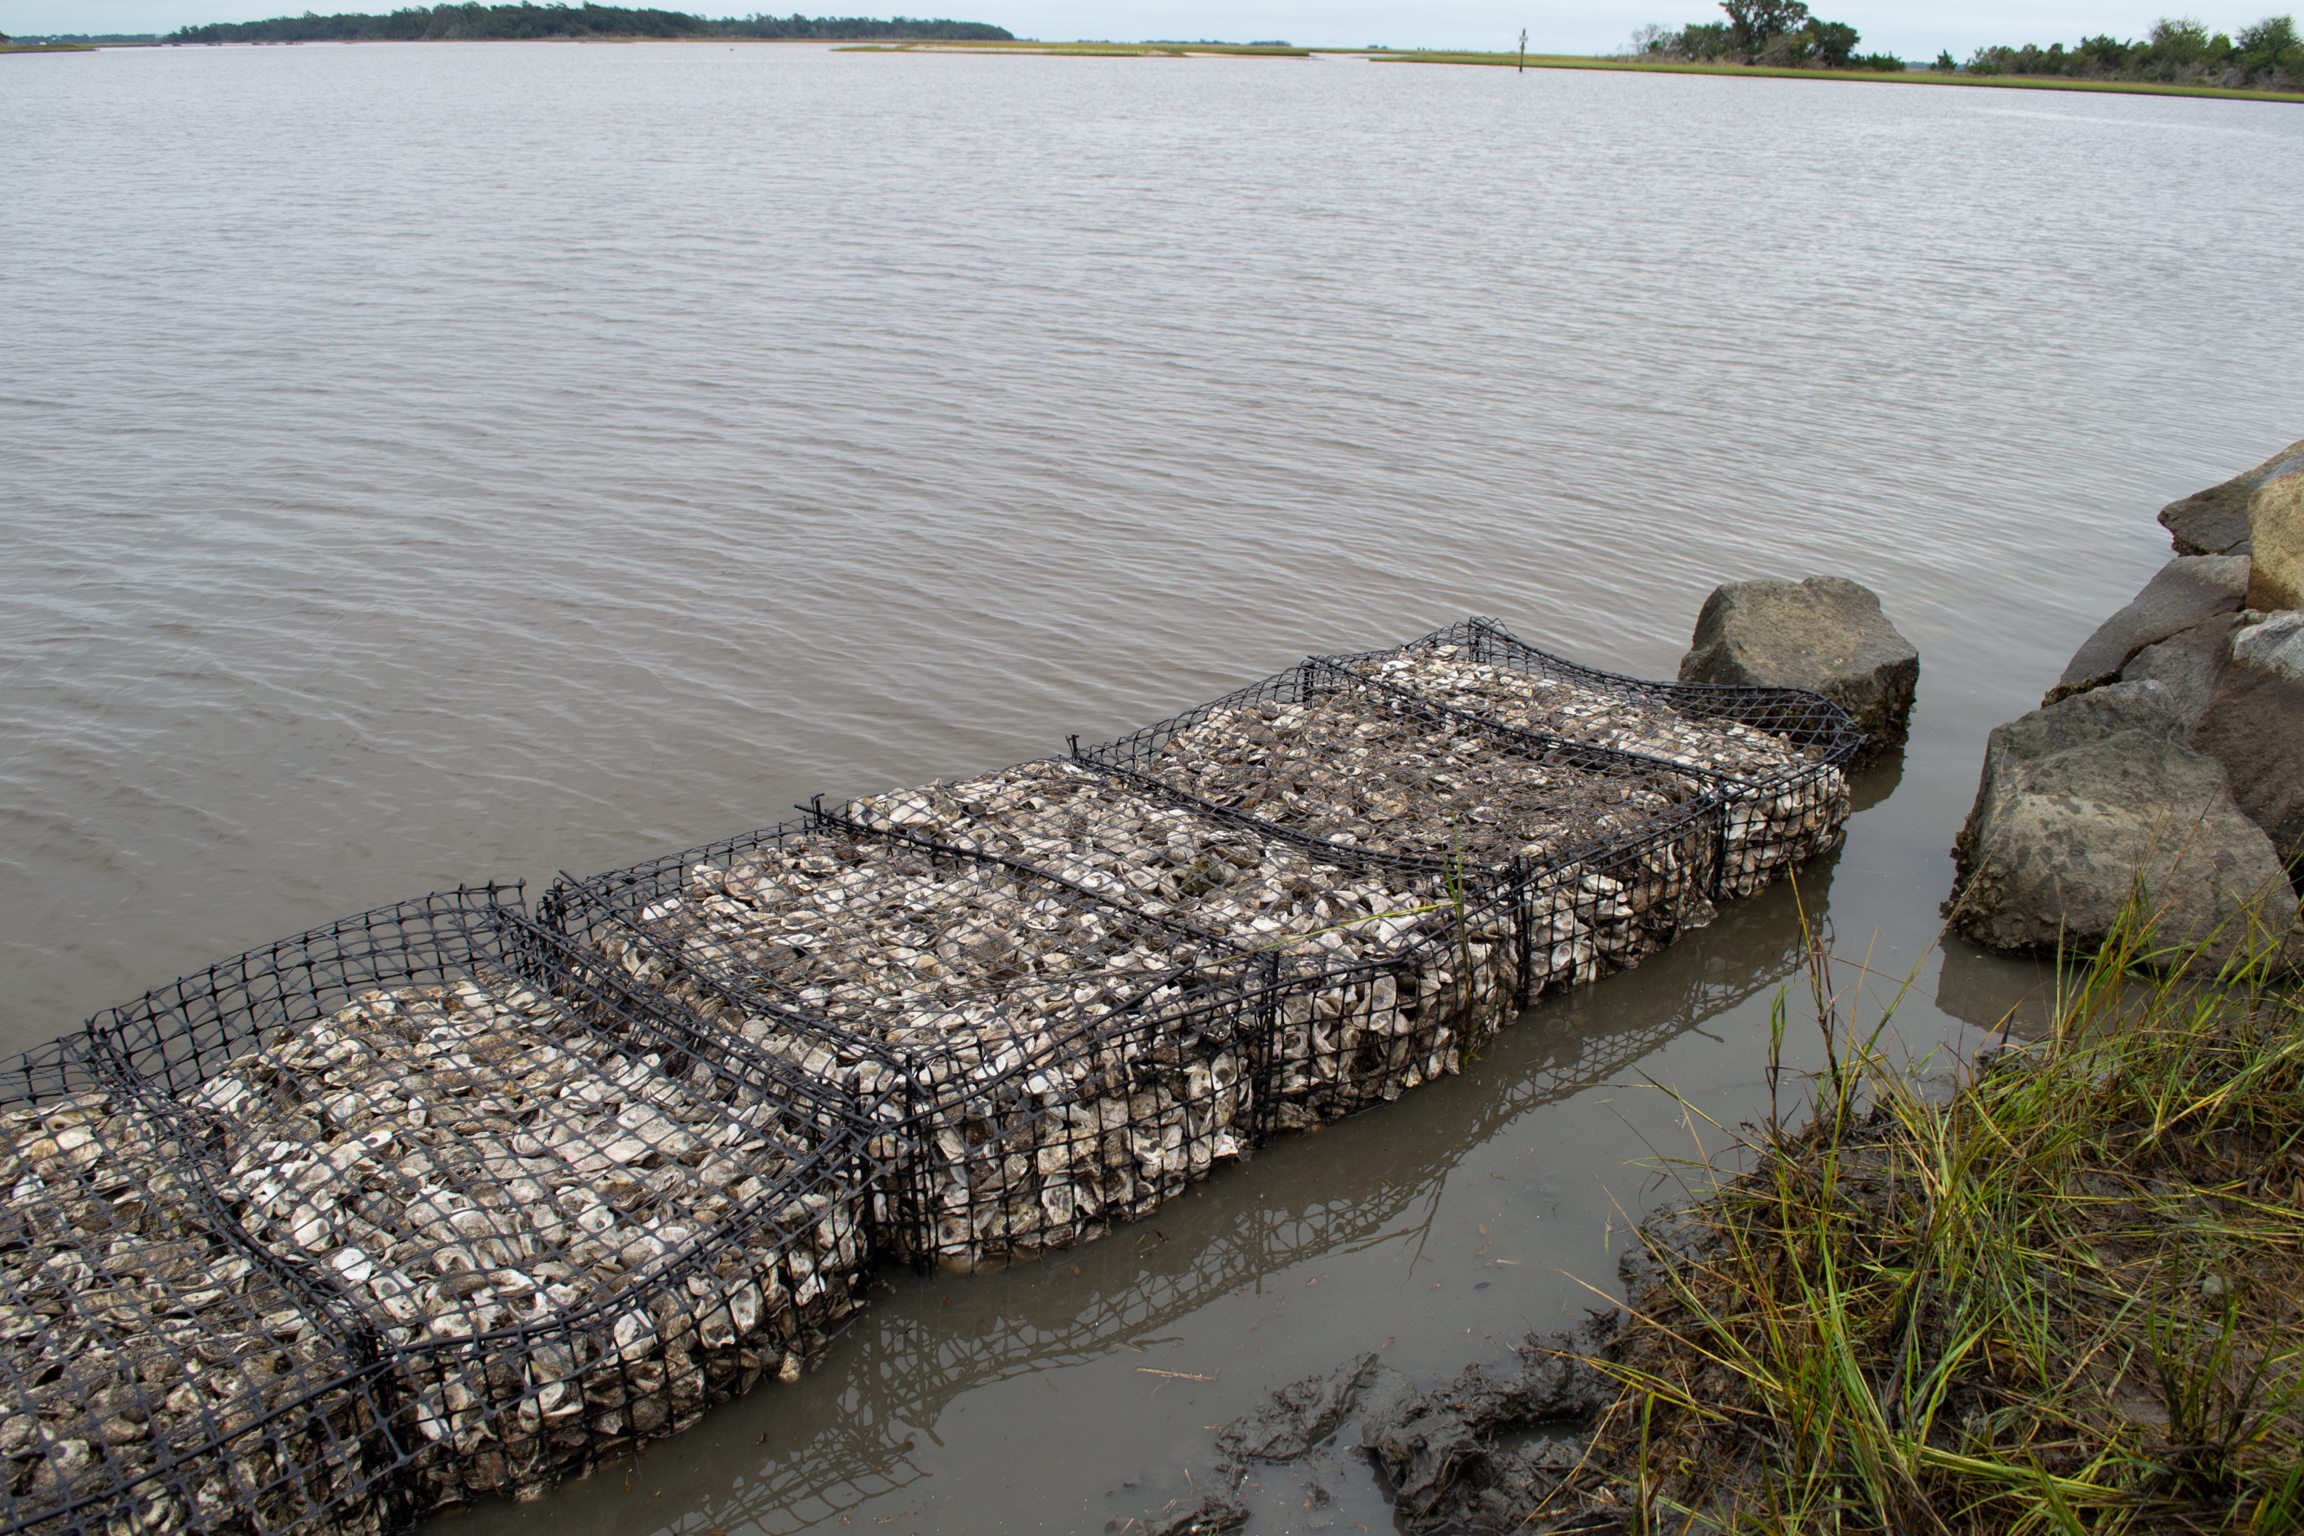 Building Living Shorelines with Oyster Shells